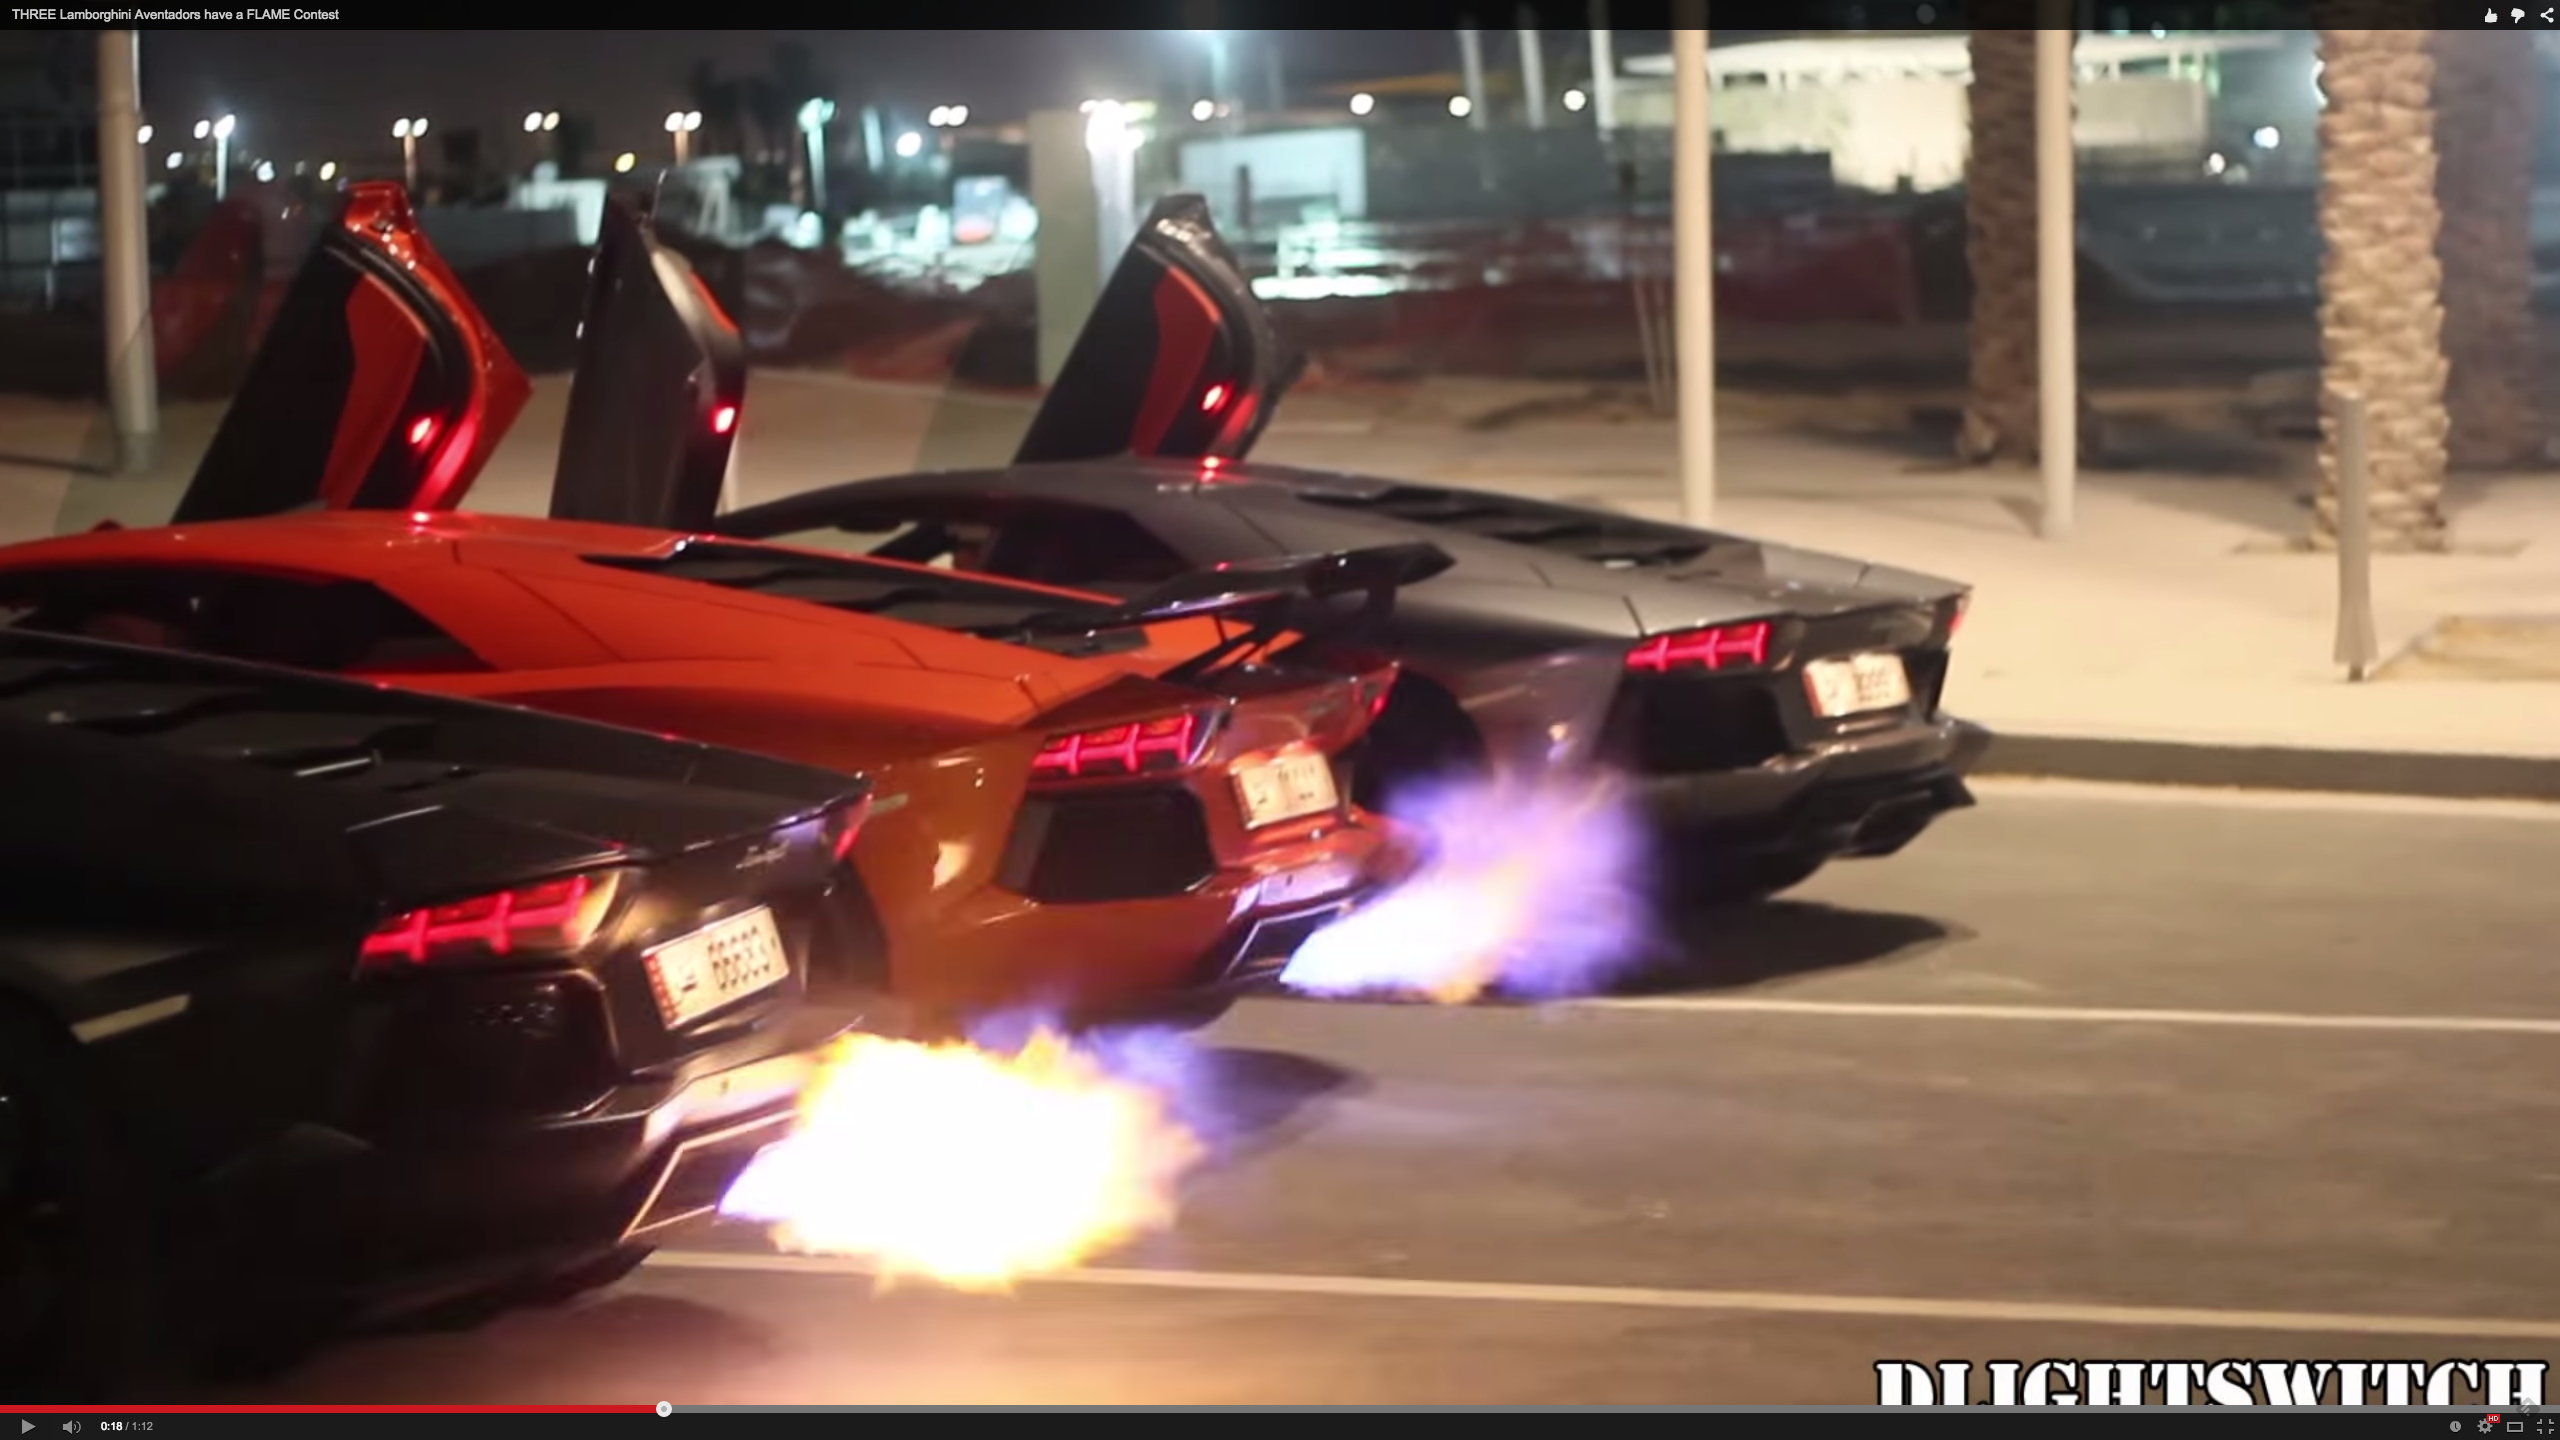 lamborghini trio gets into the best kind of flame war